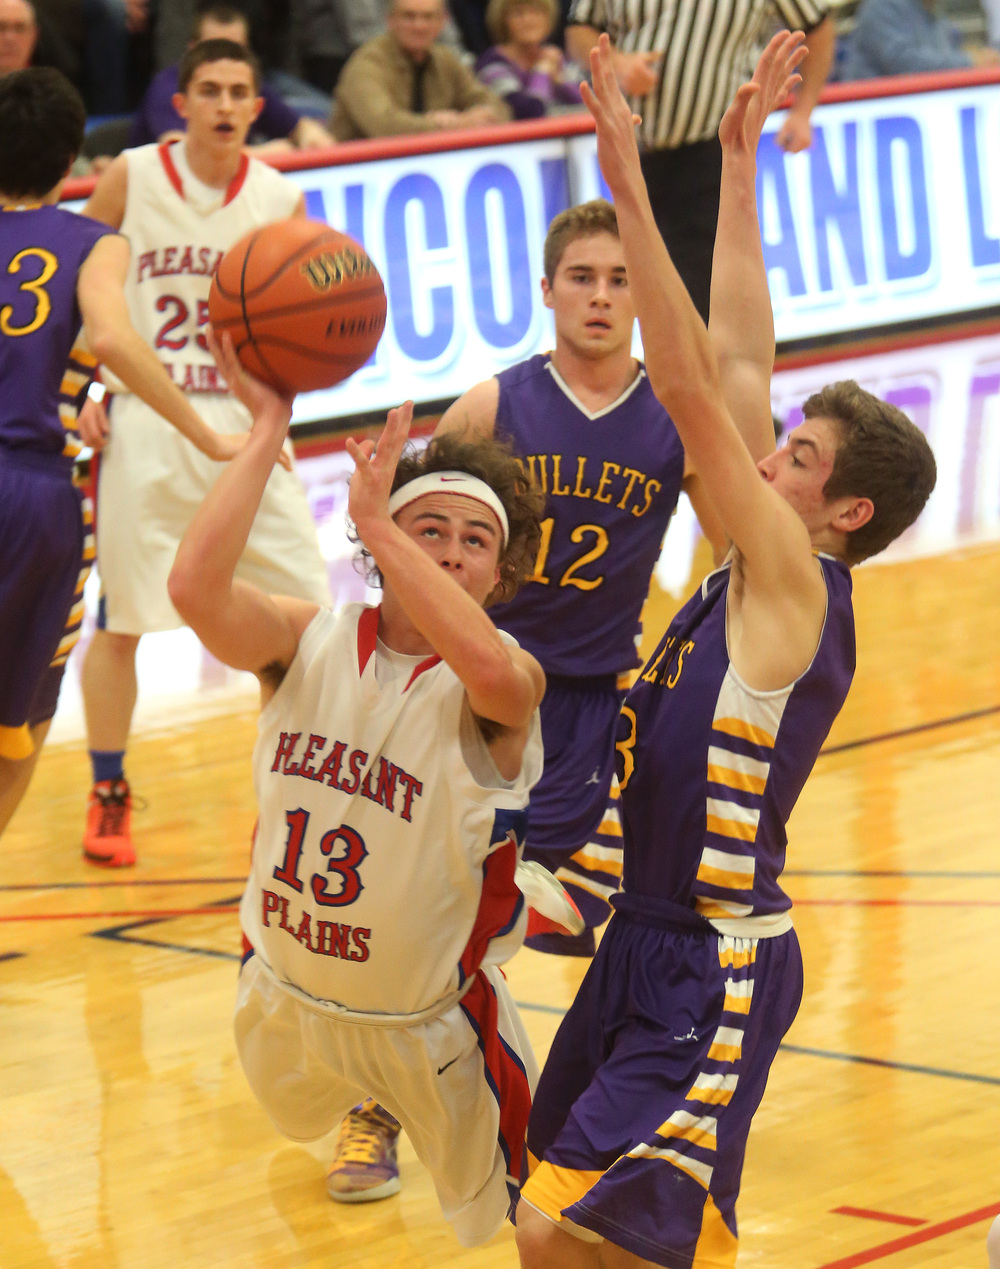 Pleasant Plains player Cole Greer goes airborne while putting up a shot during first half action while defended by Williamsville player Brandon Bunger. David Spencer/The State Journal Register